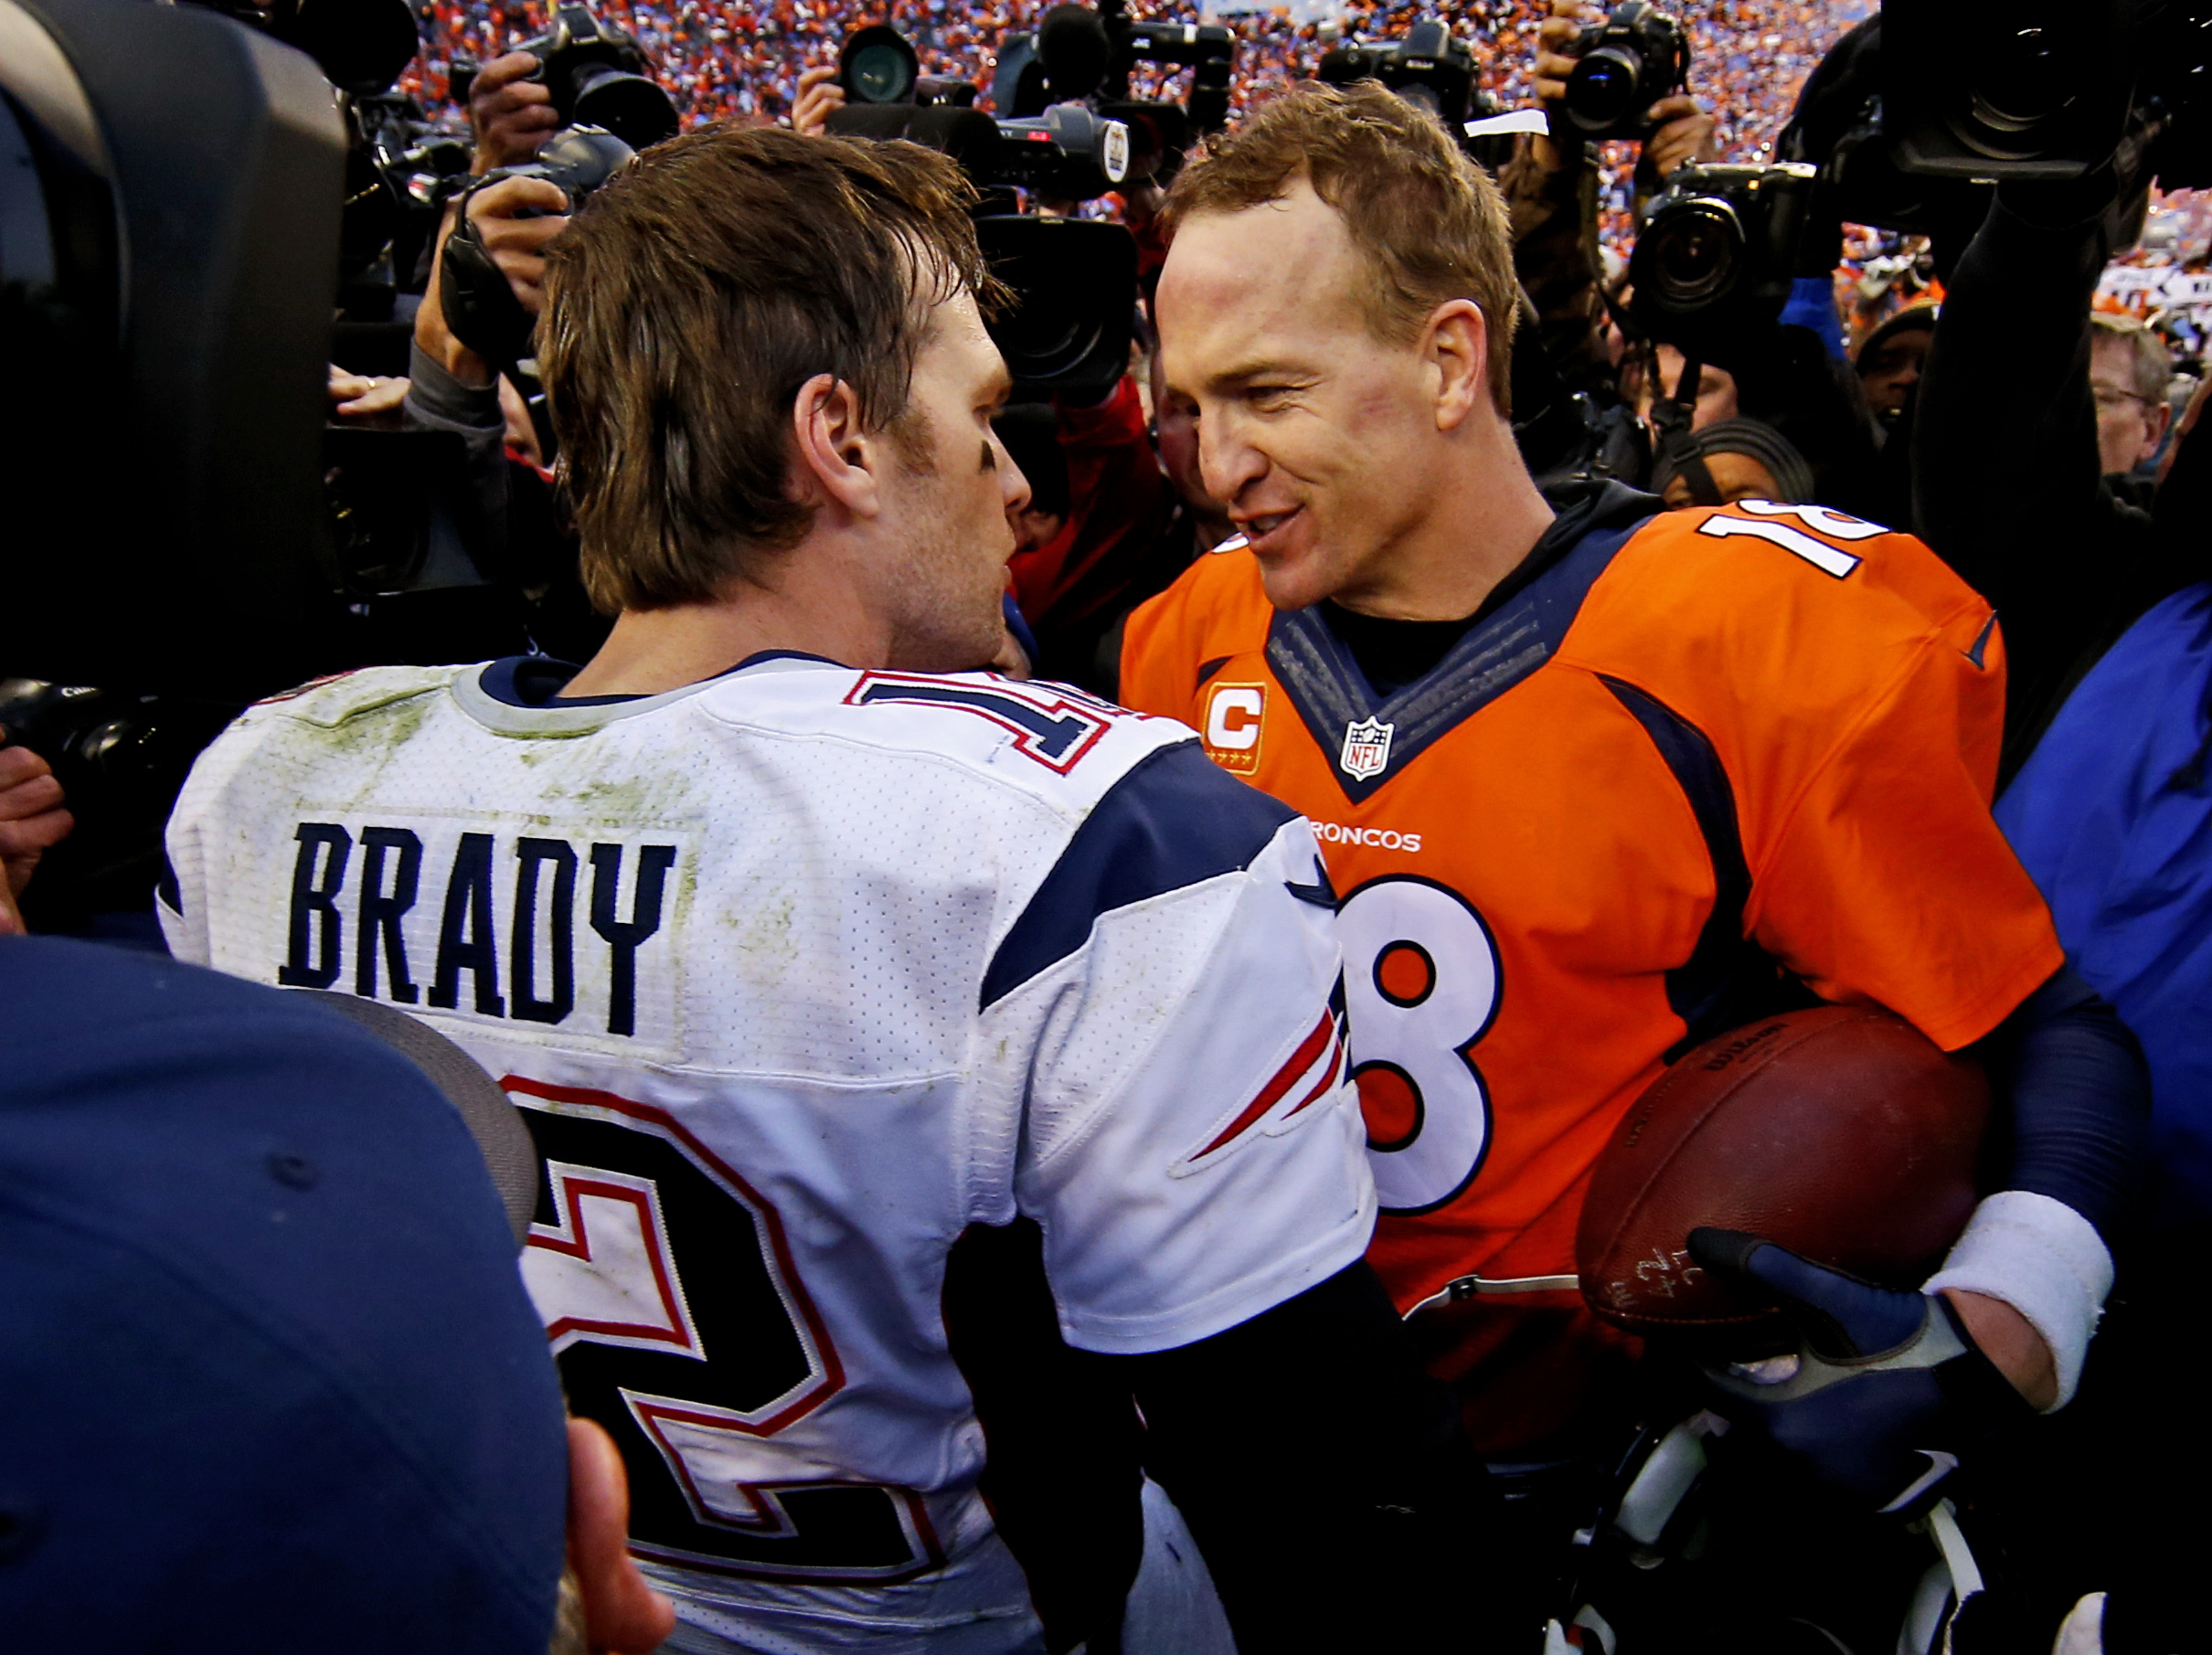 Tom Brady says not playing against Peyton Manning anymore 'will always suck'